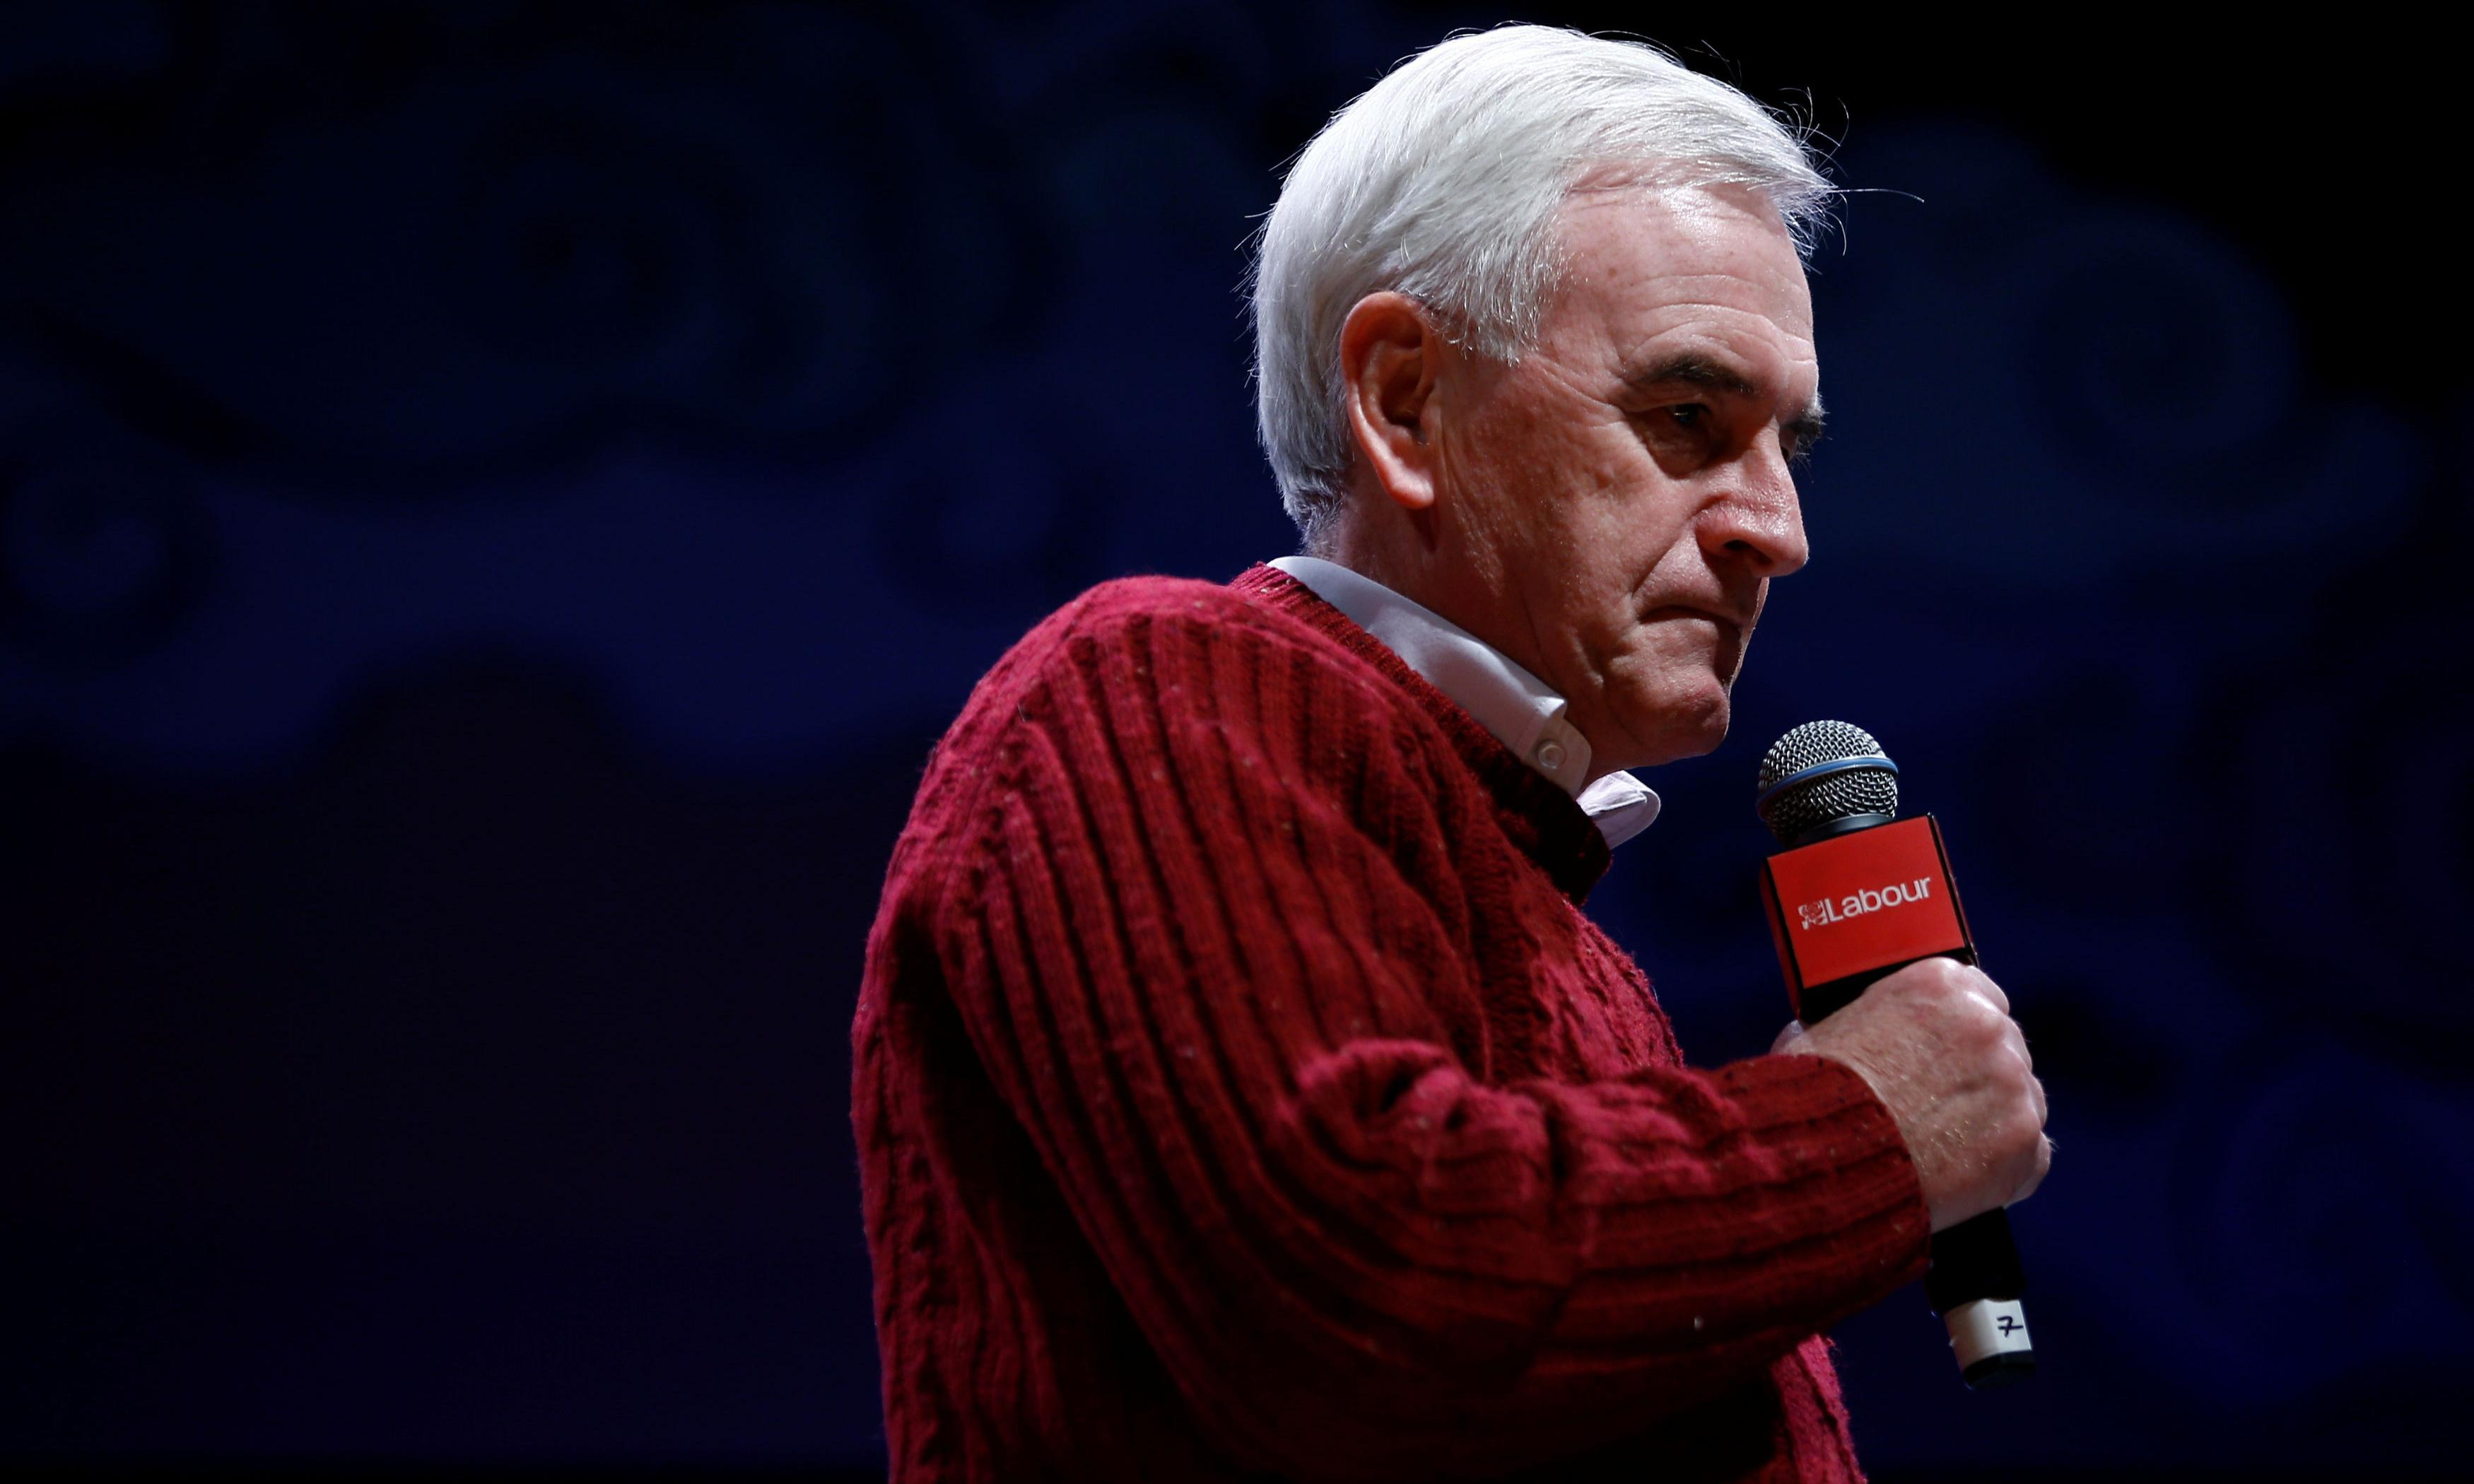 John McDonnell will not return to shadow cabinet